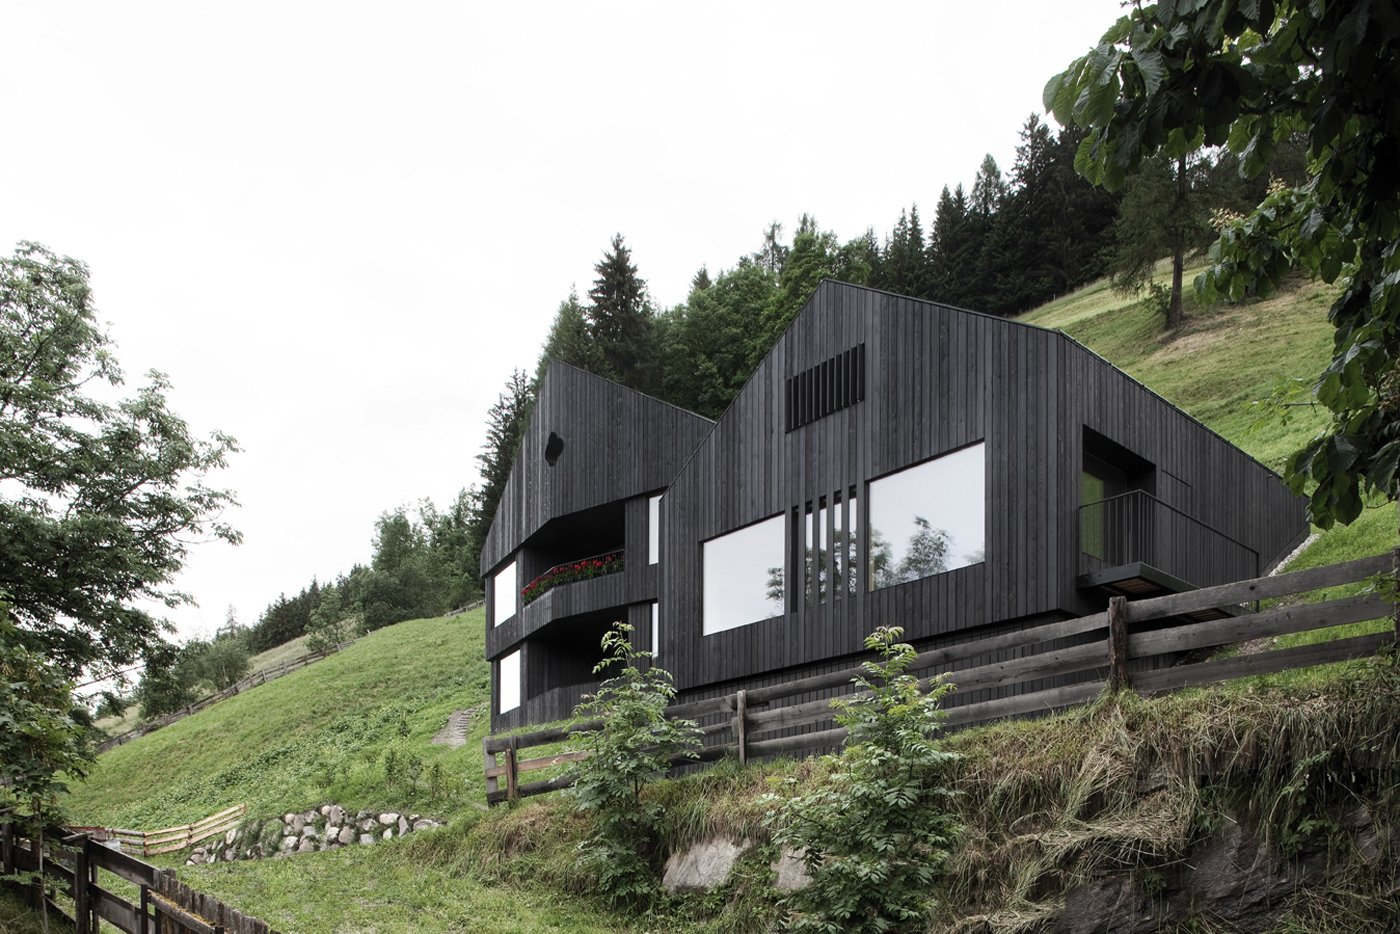 Only local materials were used to build the chalet, including the larch wood cladding of the exterior, to reinforce the connection between indoors and outdoors.